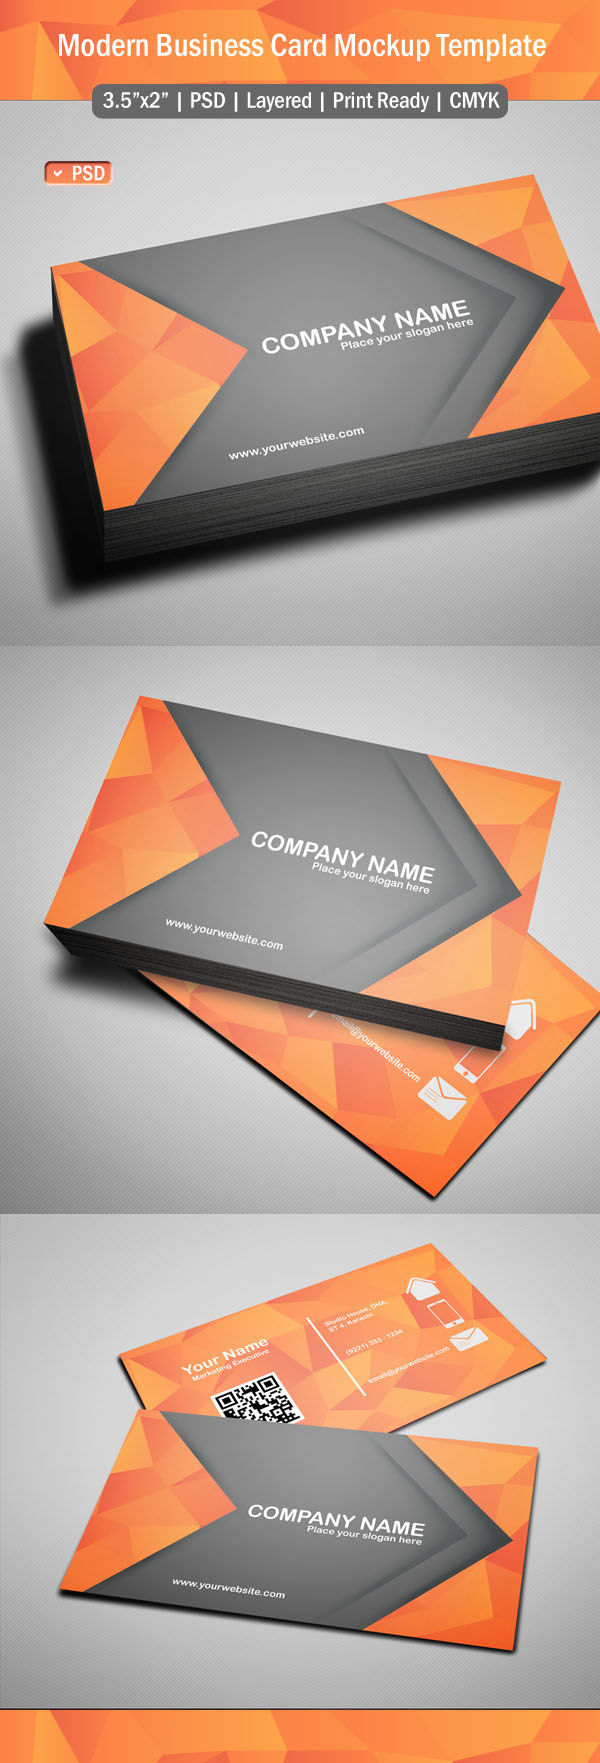 Free Modern Business Card Template (PSD)